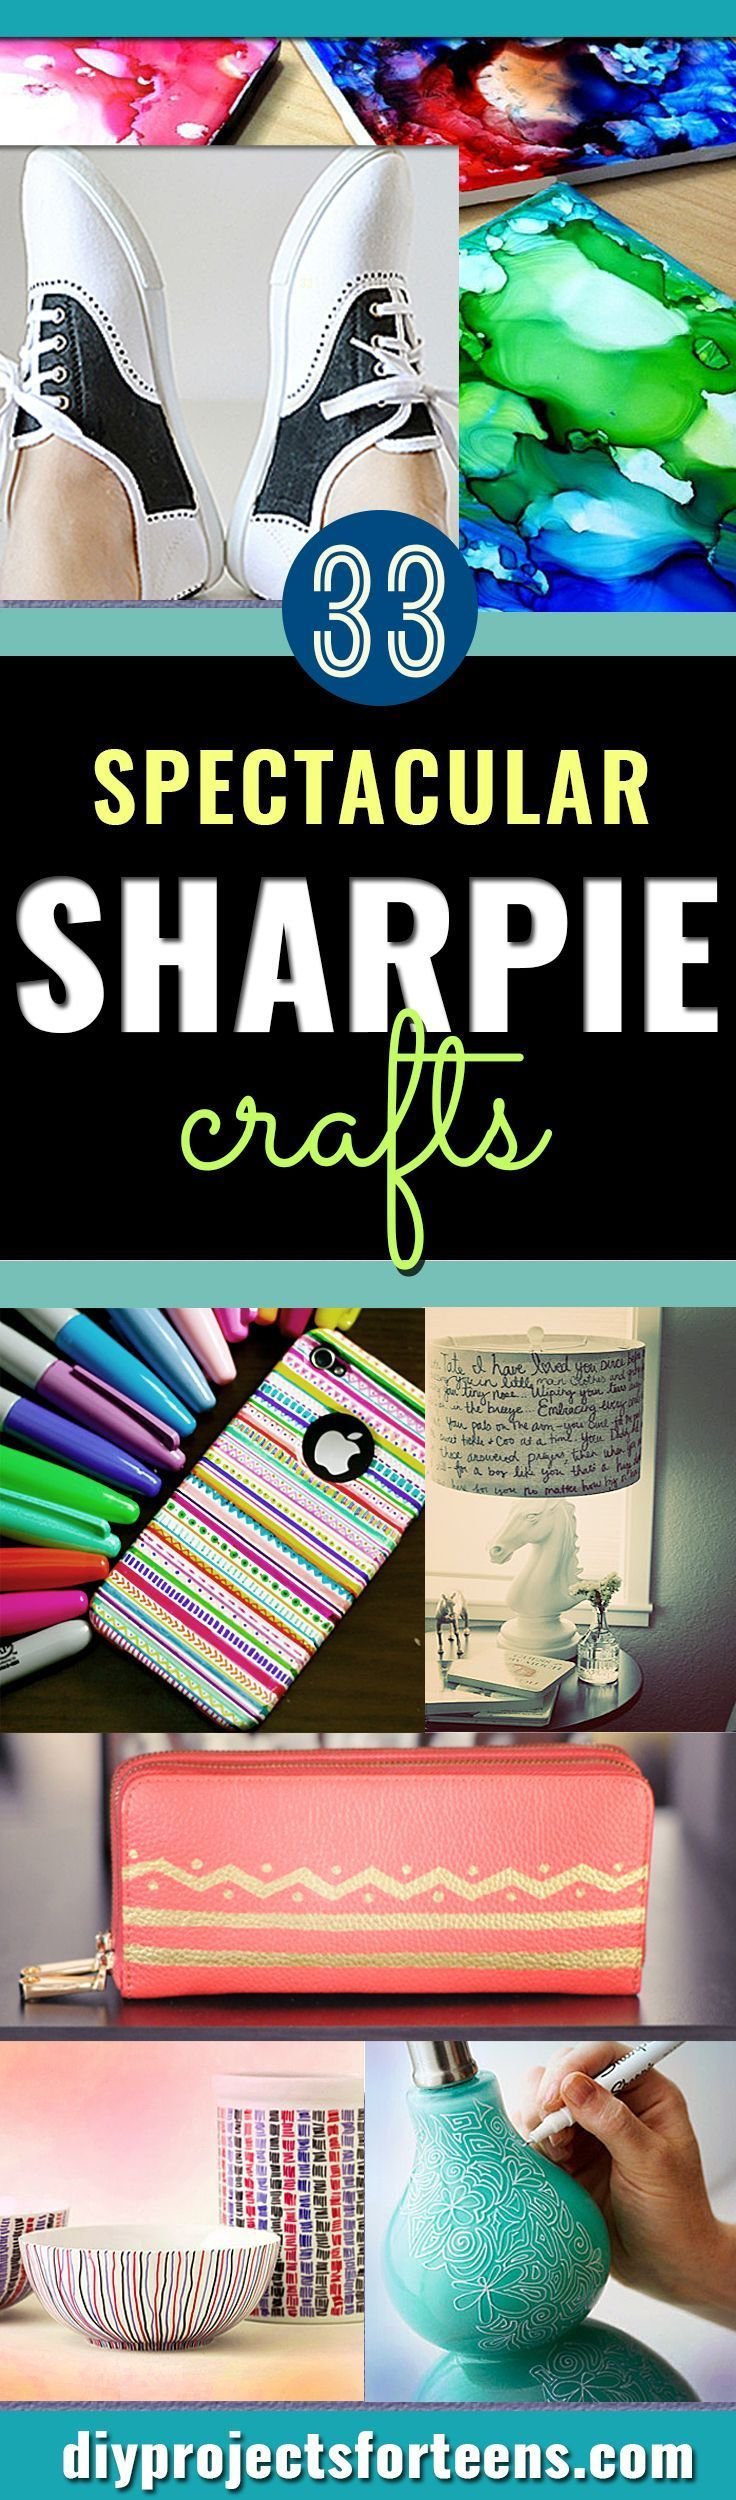 Cool Sharpie Crafts Ideas-  Cool DIY Ideas with Sharpies for Teens and Tweens - Mugs, Room Decor, Pillows, Shoes and More